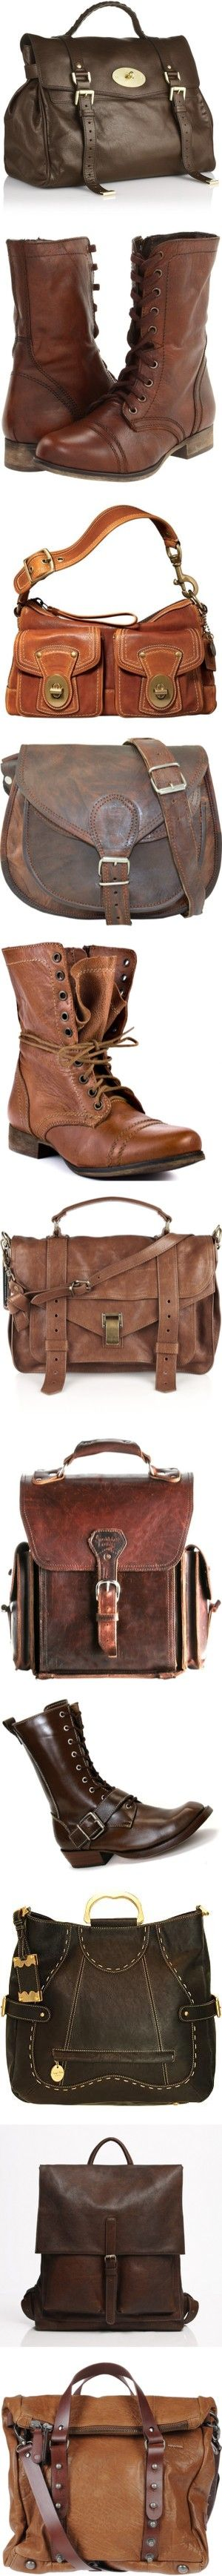 Bags n' Boots by cynthia335 on Polyvore featuring bags, handbags, purses, bolsas, brown leather satchel, leather handbags, brown handbags, brown satchel purse, brown satchel and shoes